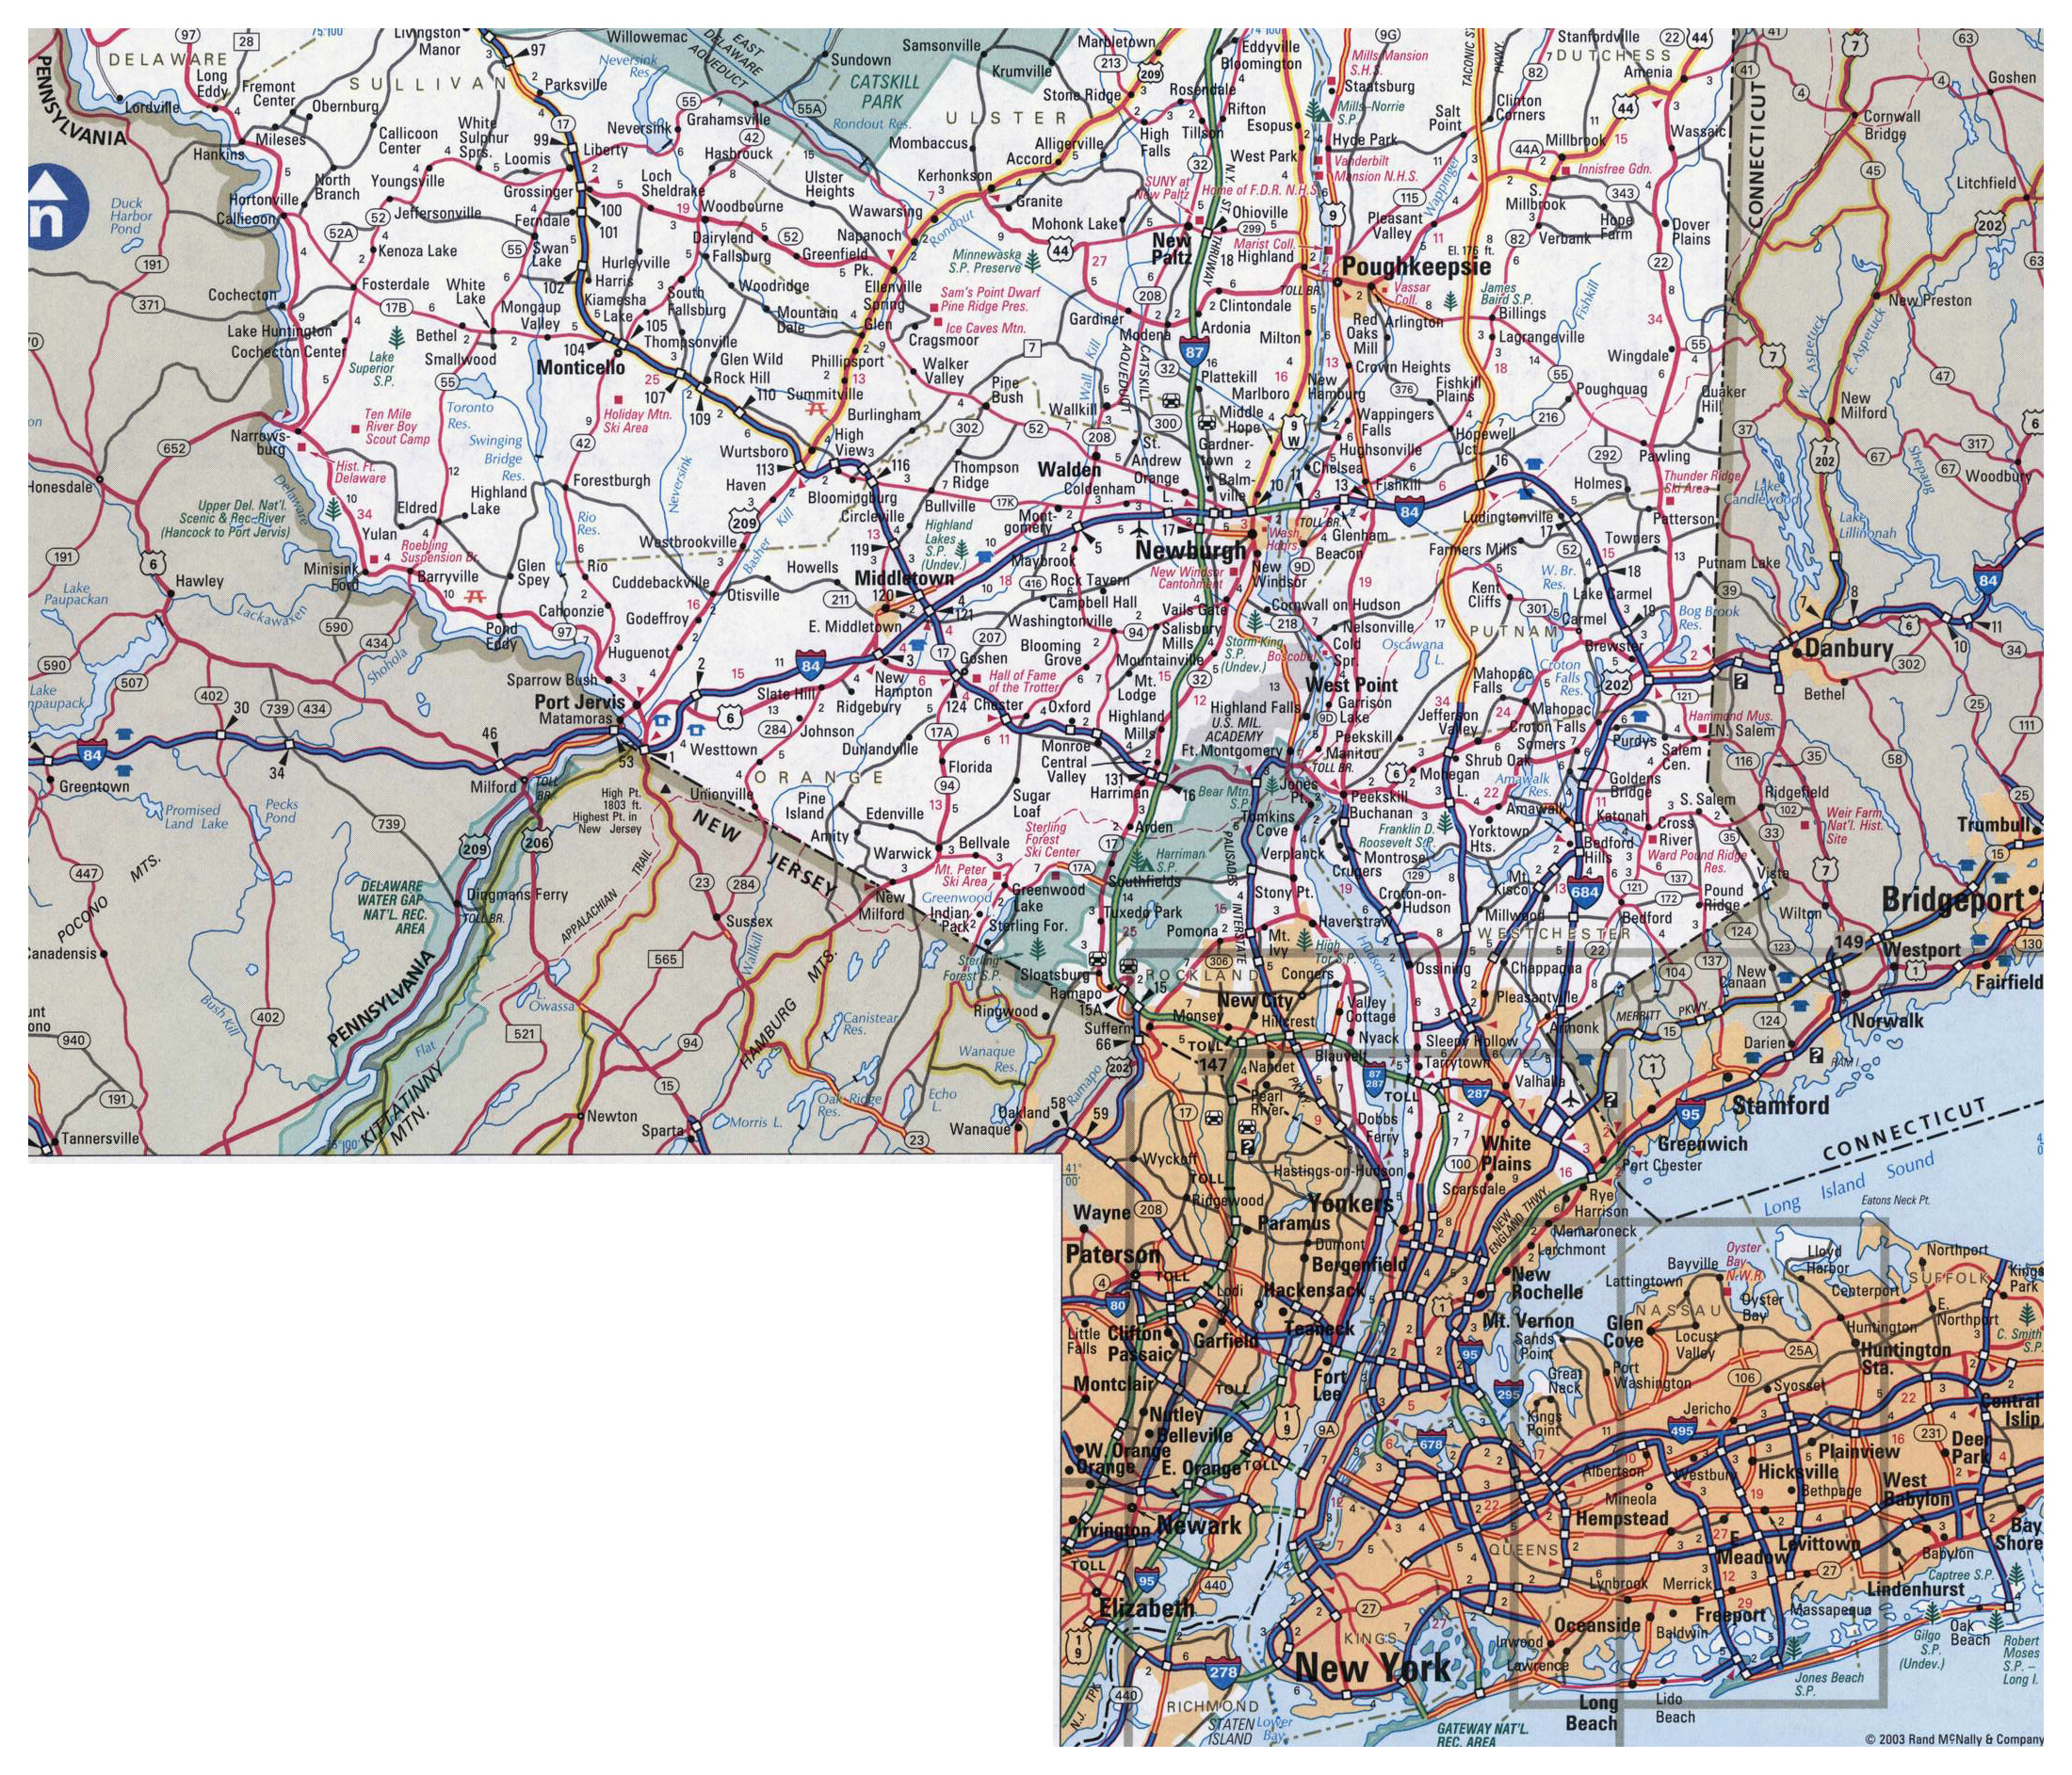 Detailed Map Of New York City.Large Detailed Roads And Highways Map Of New York City And